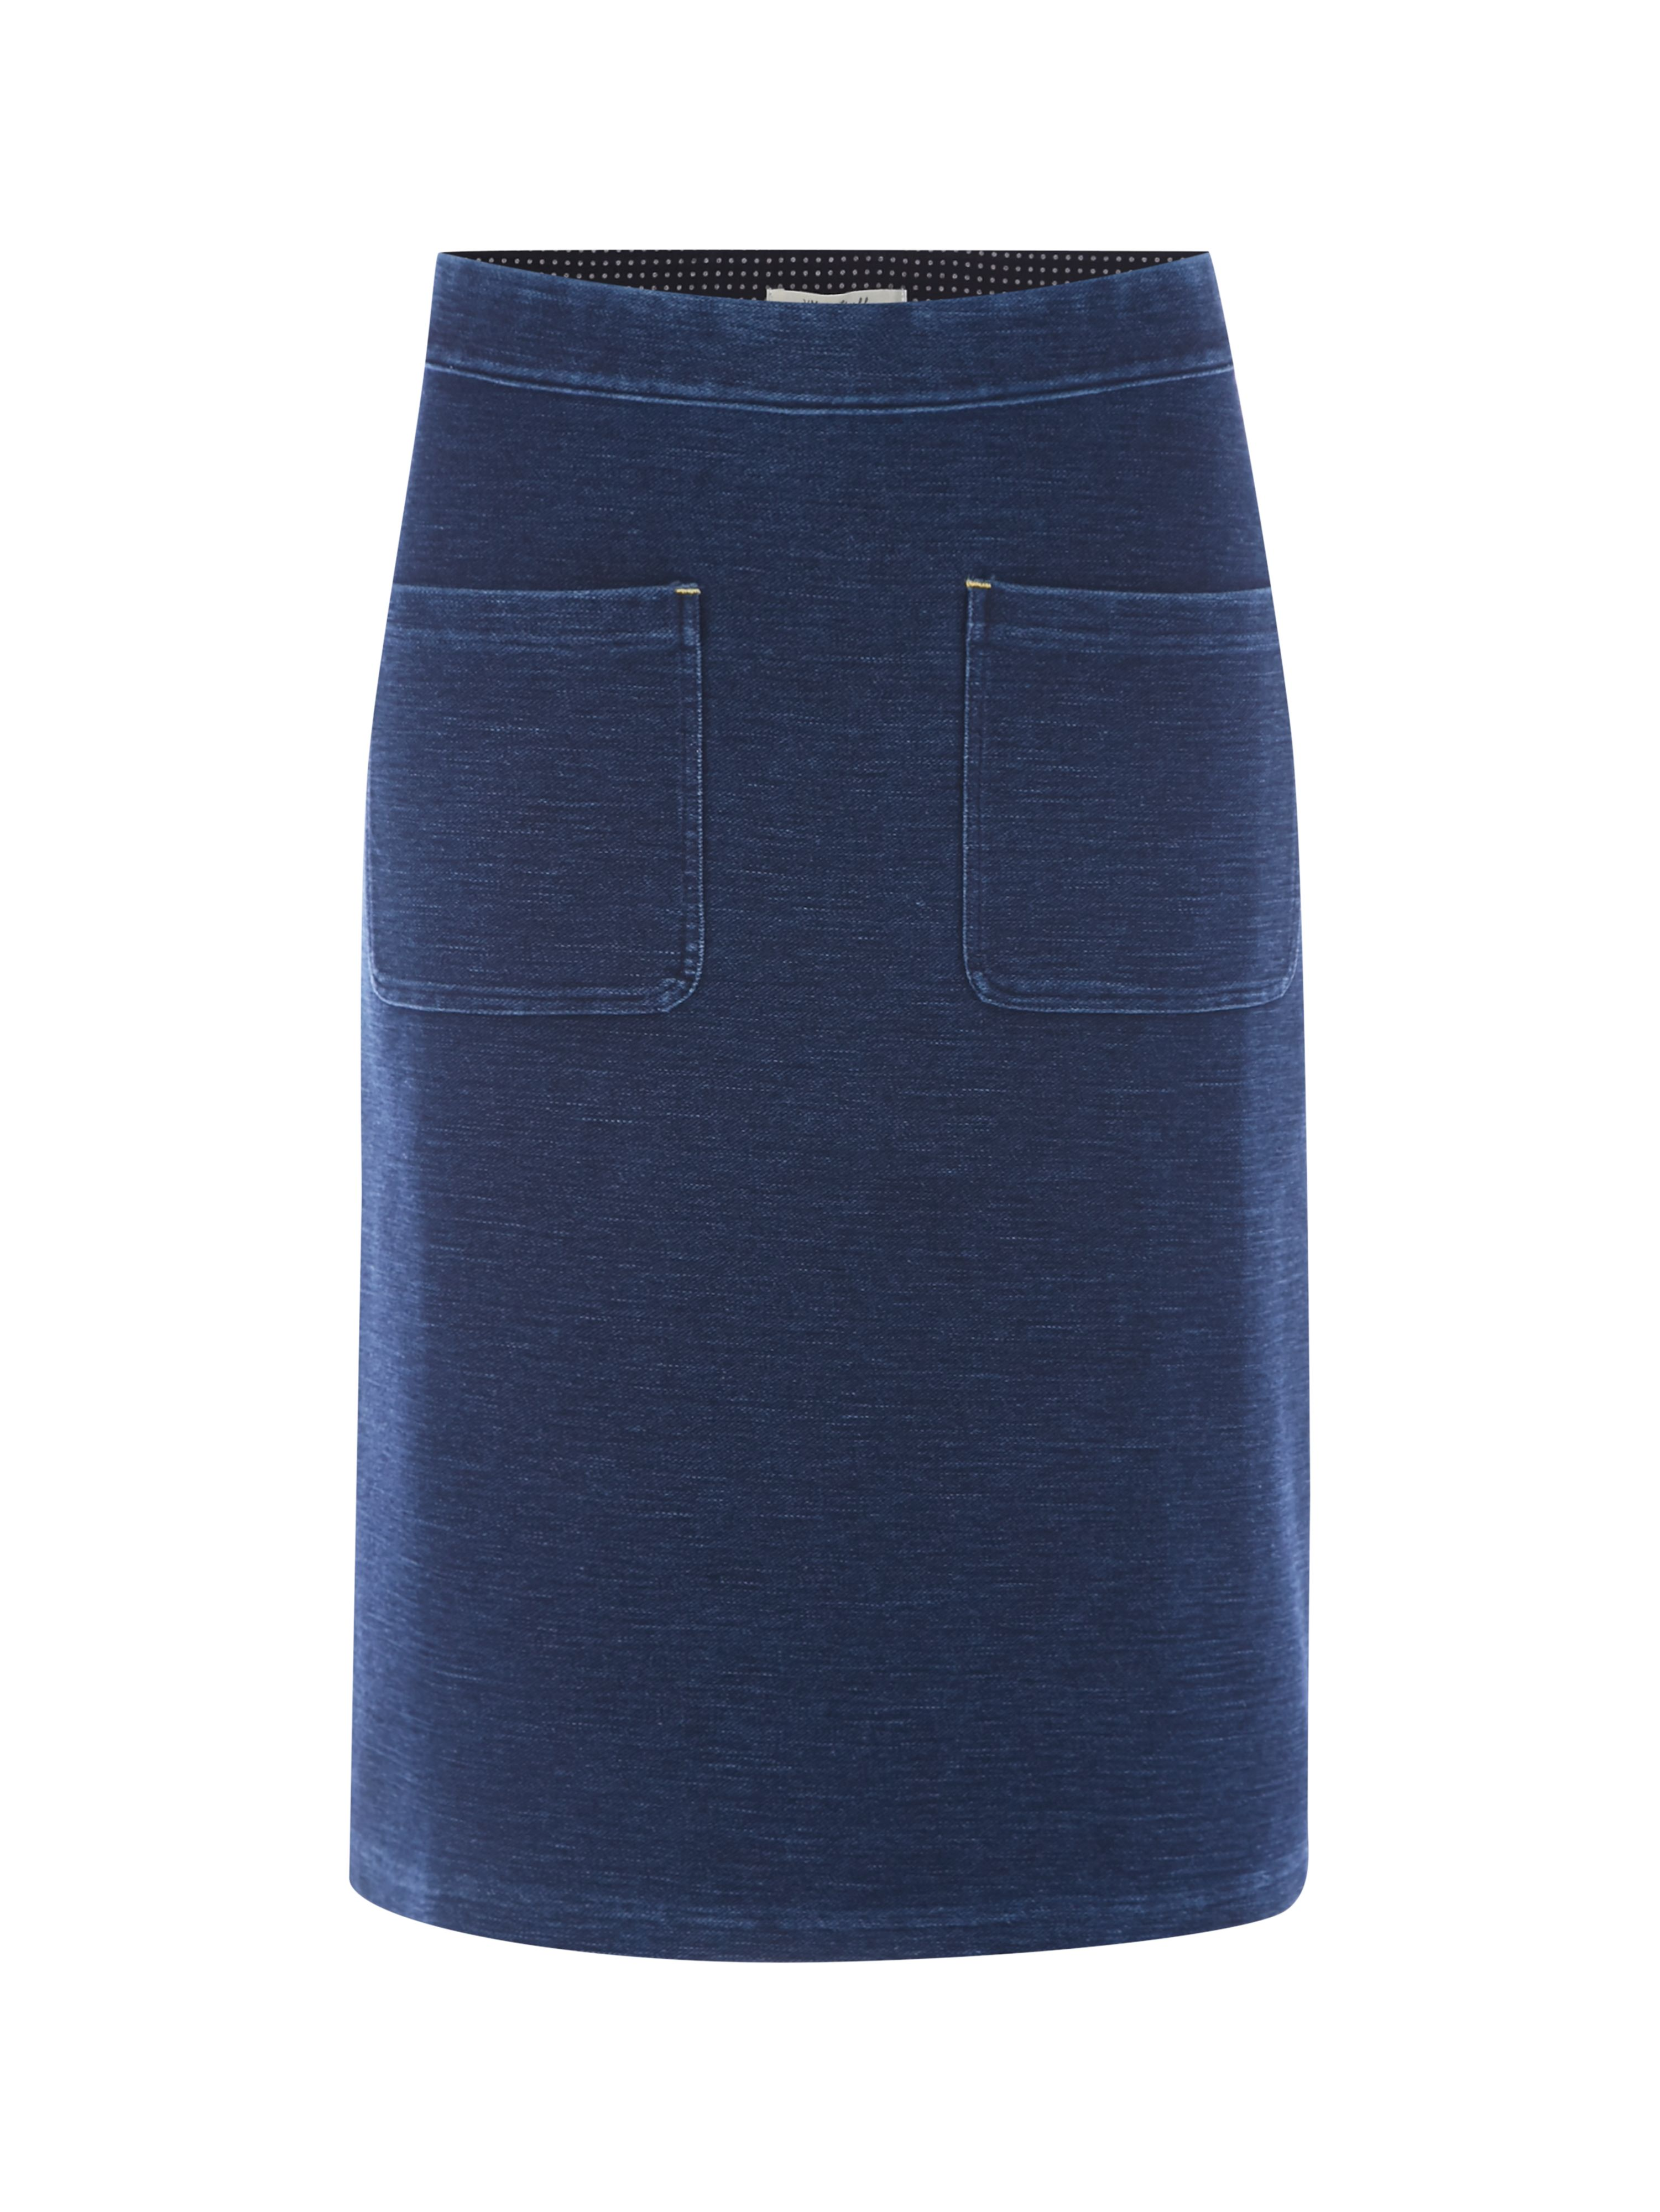 White Stuff Kilmory Pocket Skirt, Denim